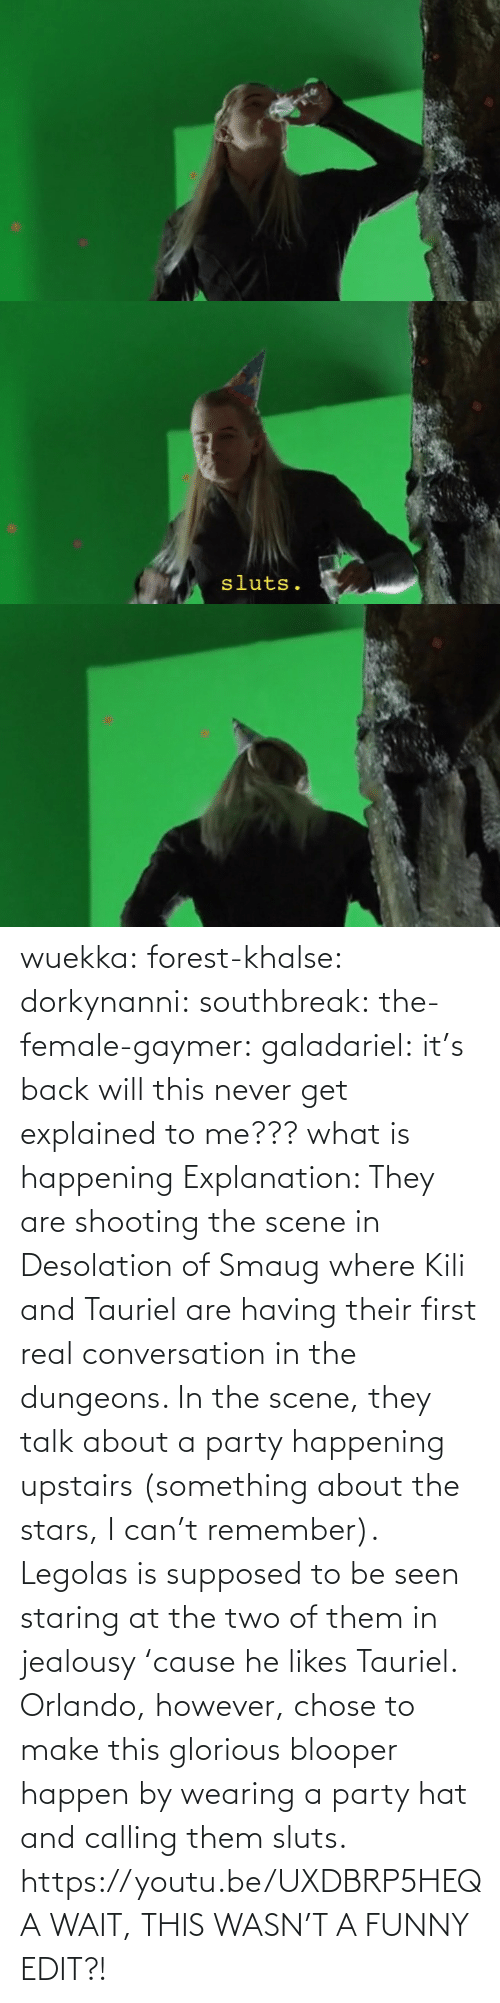 i can: wuekka: forest-khalse:   dorkynanni:  southbreak:   the-female-gaymer:   galadariel:  it's back   will this never get explained to me???    what is happening    Explanation:  They are shooting the scene in Desolation of Smaug where Kili and Tauriel are having their first real conversation in the dungeons.  In the scene, they talk about a party happening upstairs (something about the stars, I can't remember). Legolas is supposed to be seen staring at the two of them in jealousy 'cause he likes Tauriel.  Orlando, however, chose to make this glorious blooper happen by wearing a party hat and calling them sluts.    https://youtu.be/UXDBRP5HEQA    WAIT, THIS WASN'T A FUNNY EDIT?!